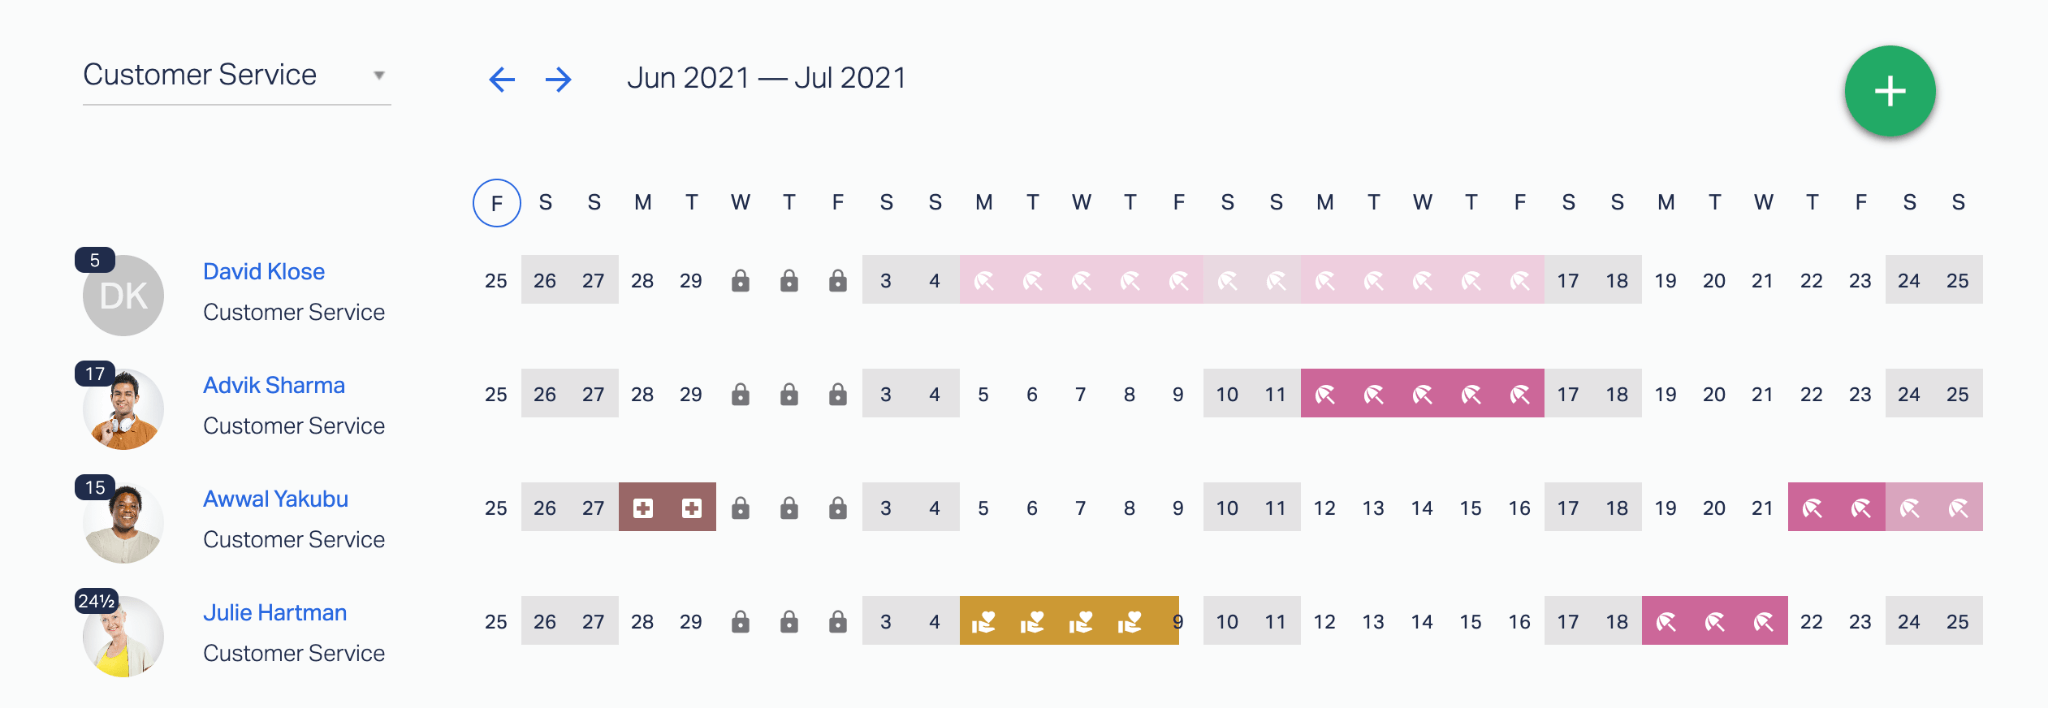 A preview of all employees with a calendar showing what dates they are taking off and why (the reasoning is only available to managers).